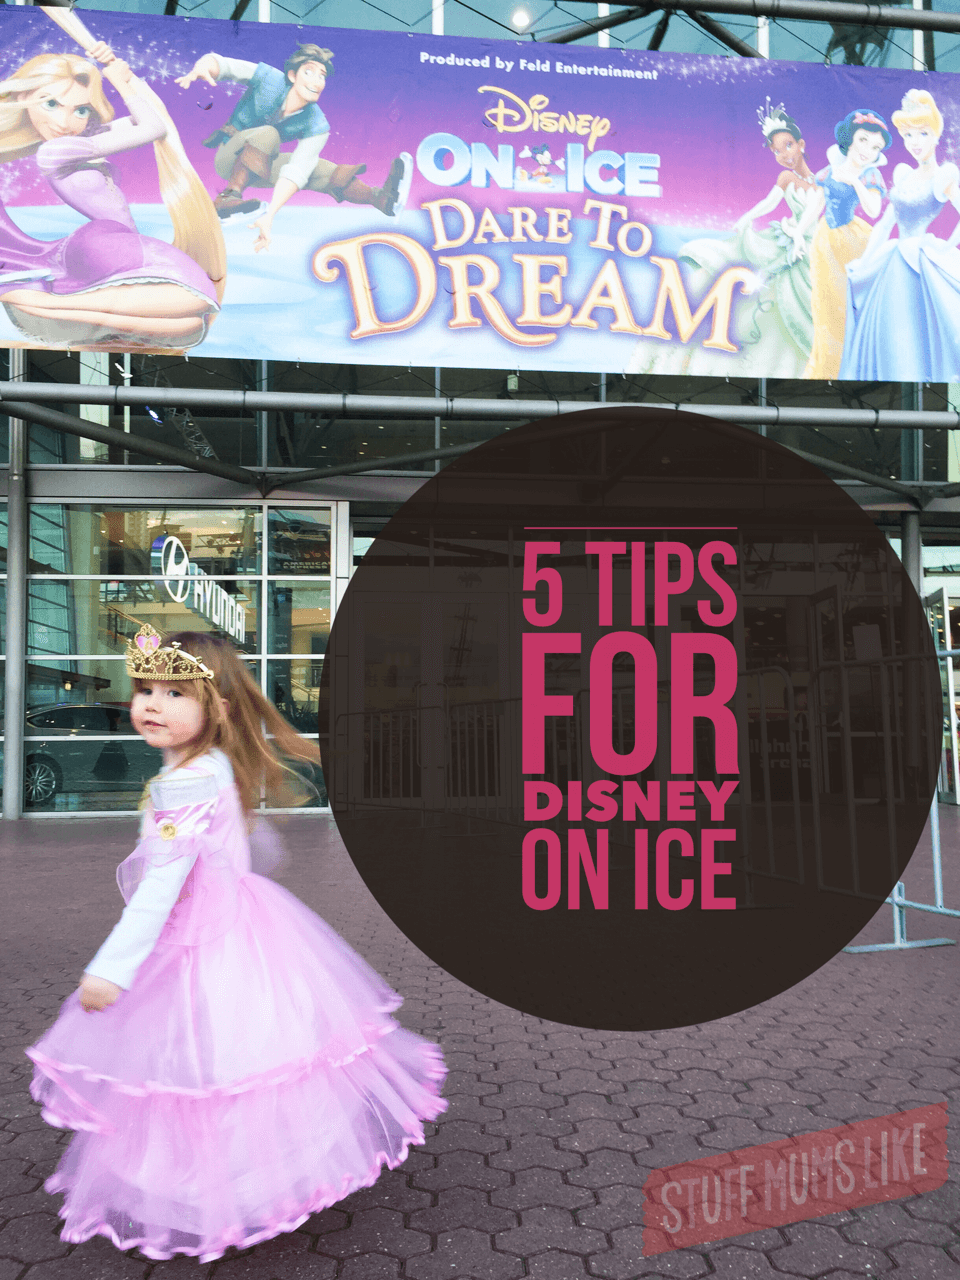 5 tips for Disney On Ice